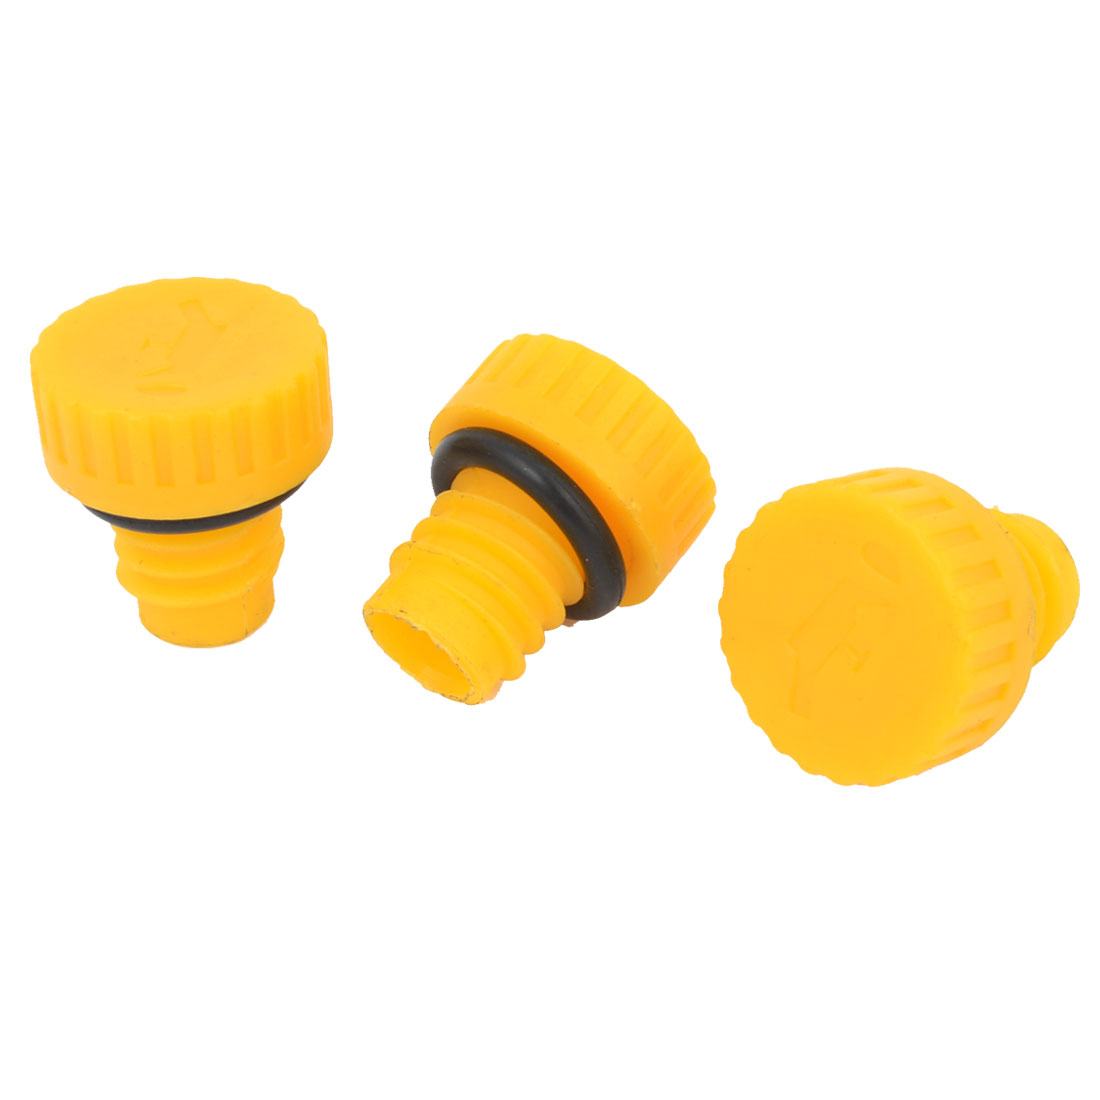 Yellow 15mm Thread Plastic Oil Plugs for Air Compressor 3 Pcs